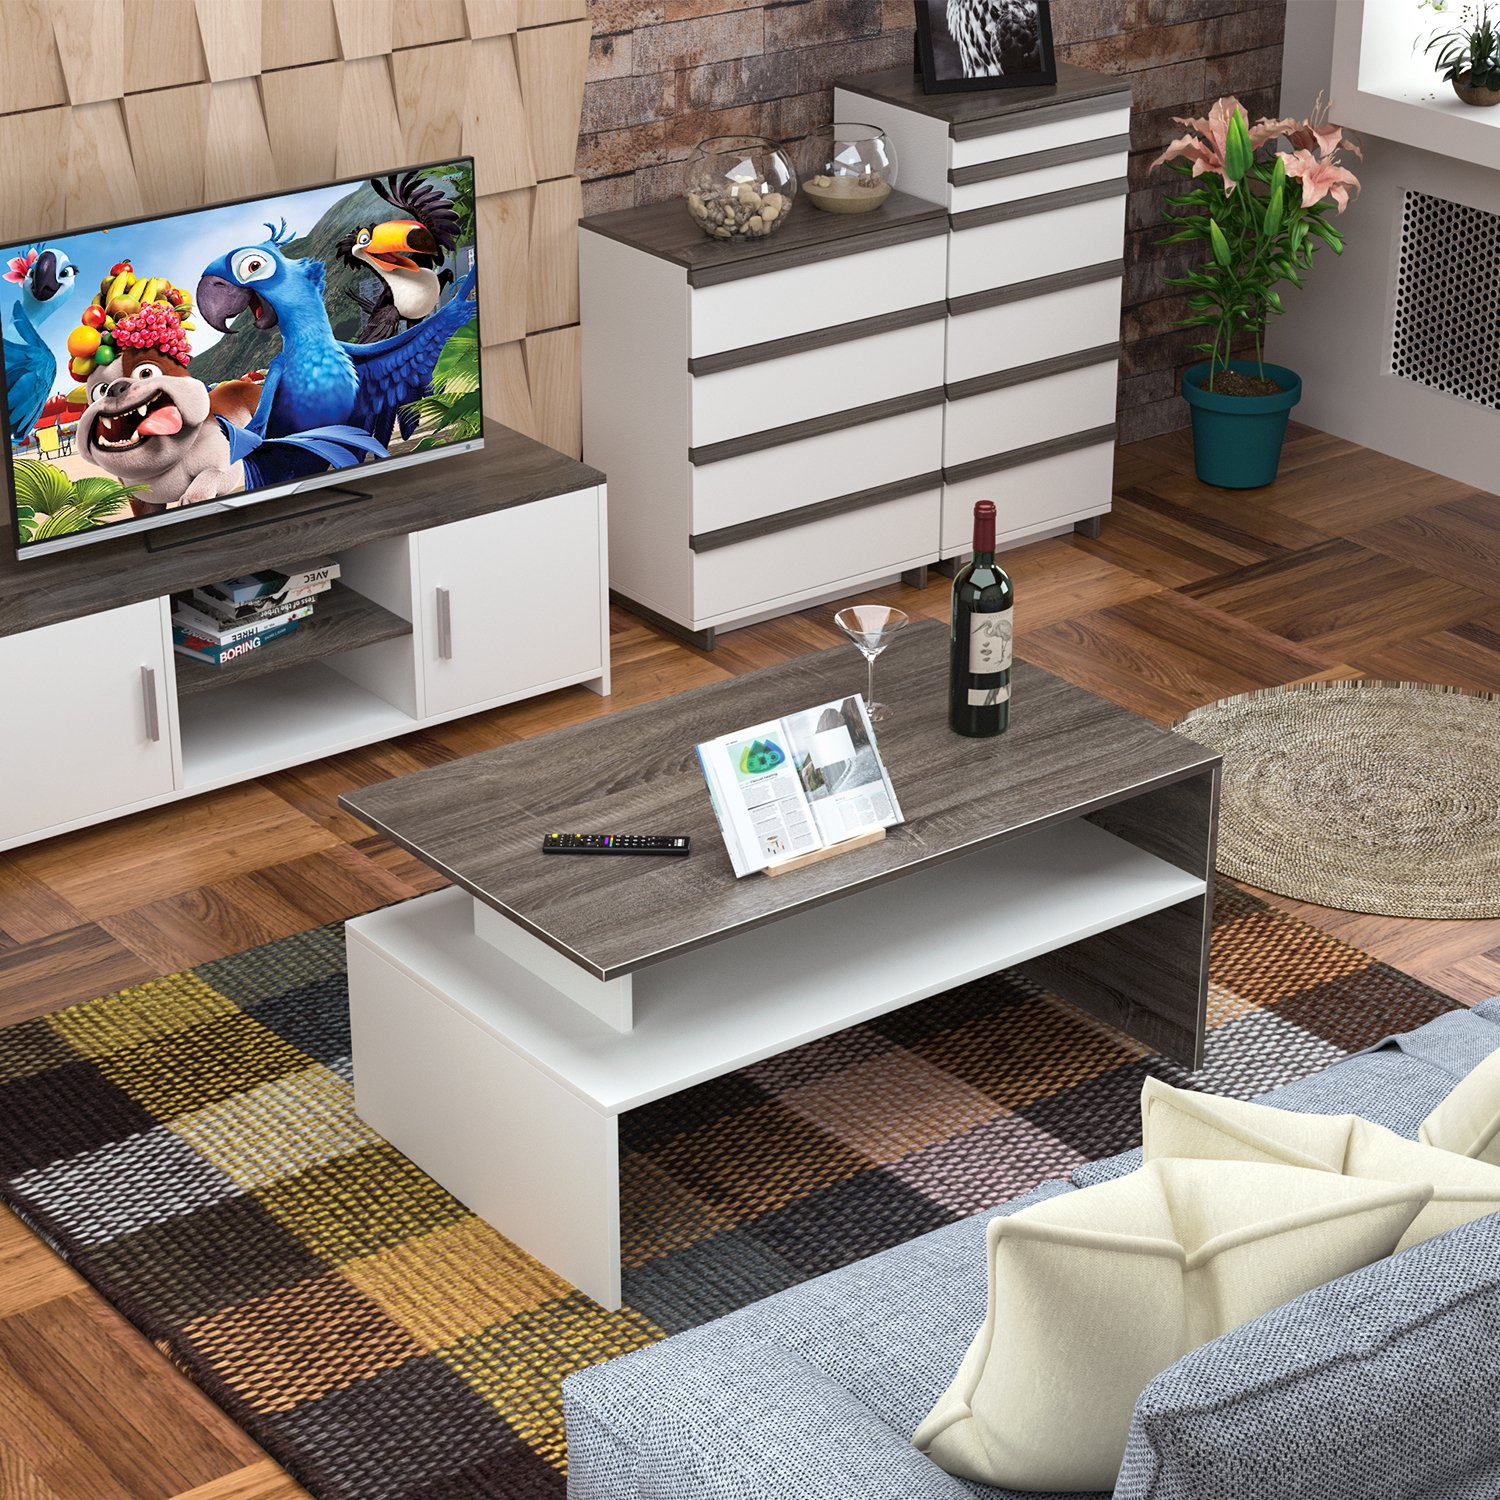 HOMFA Modern Console Table Coffee Table 2-Tier Rectangular Storage Open Shelf Table for Living Room Sitting Room Home Furniture